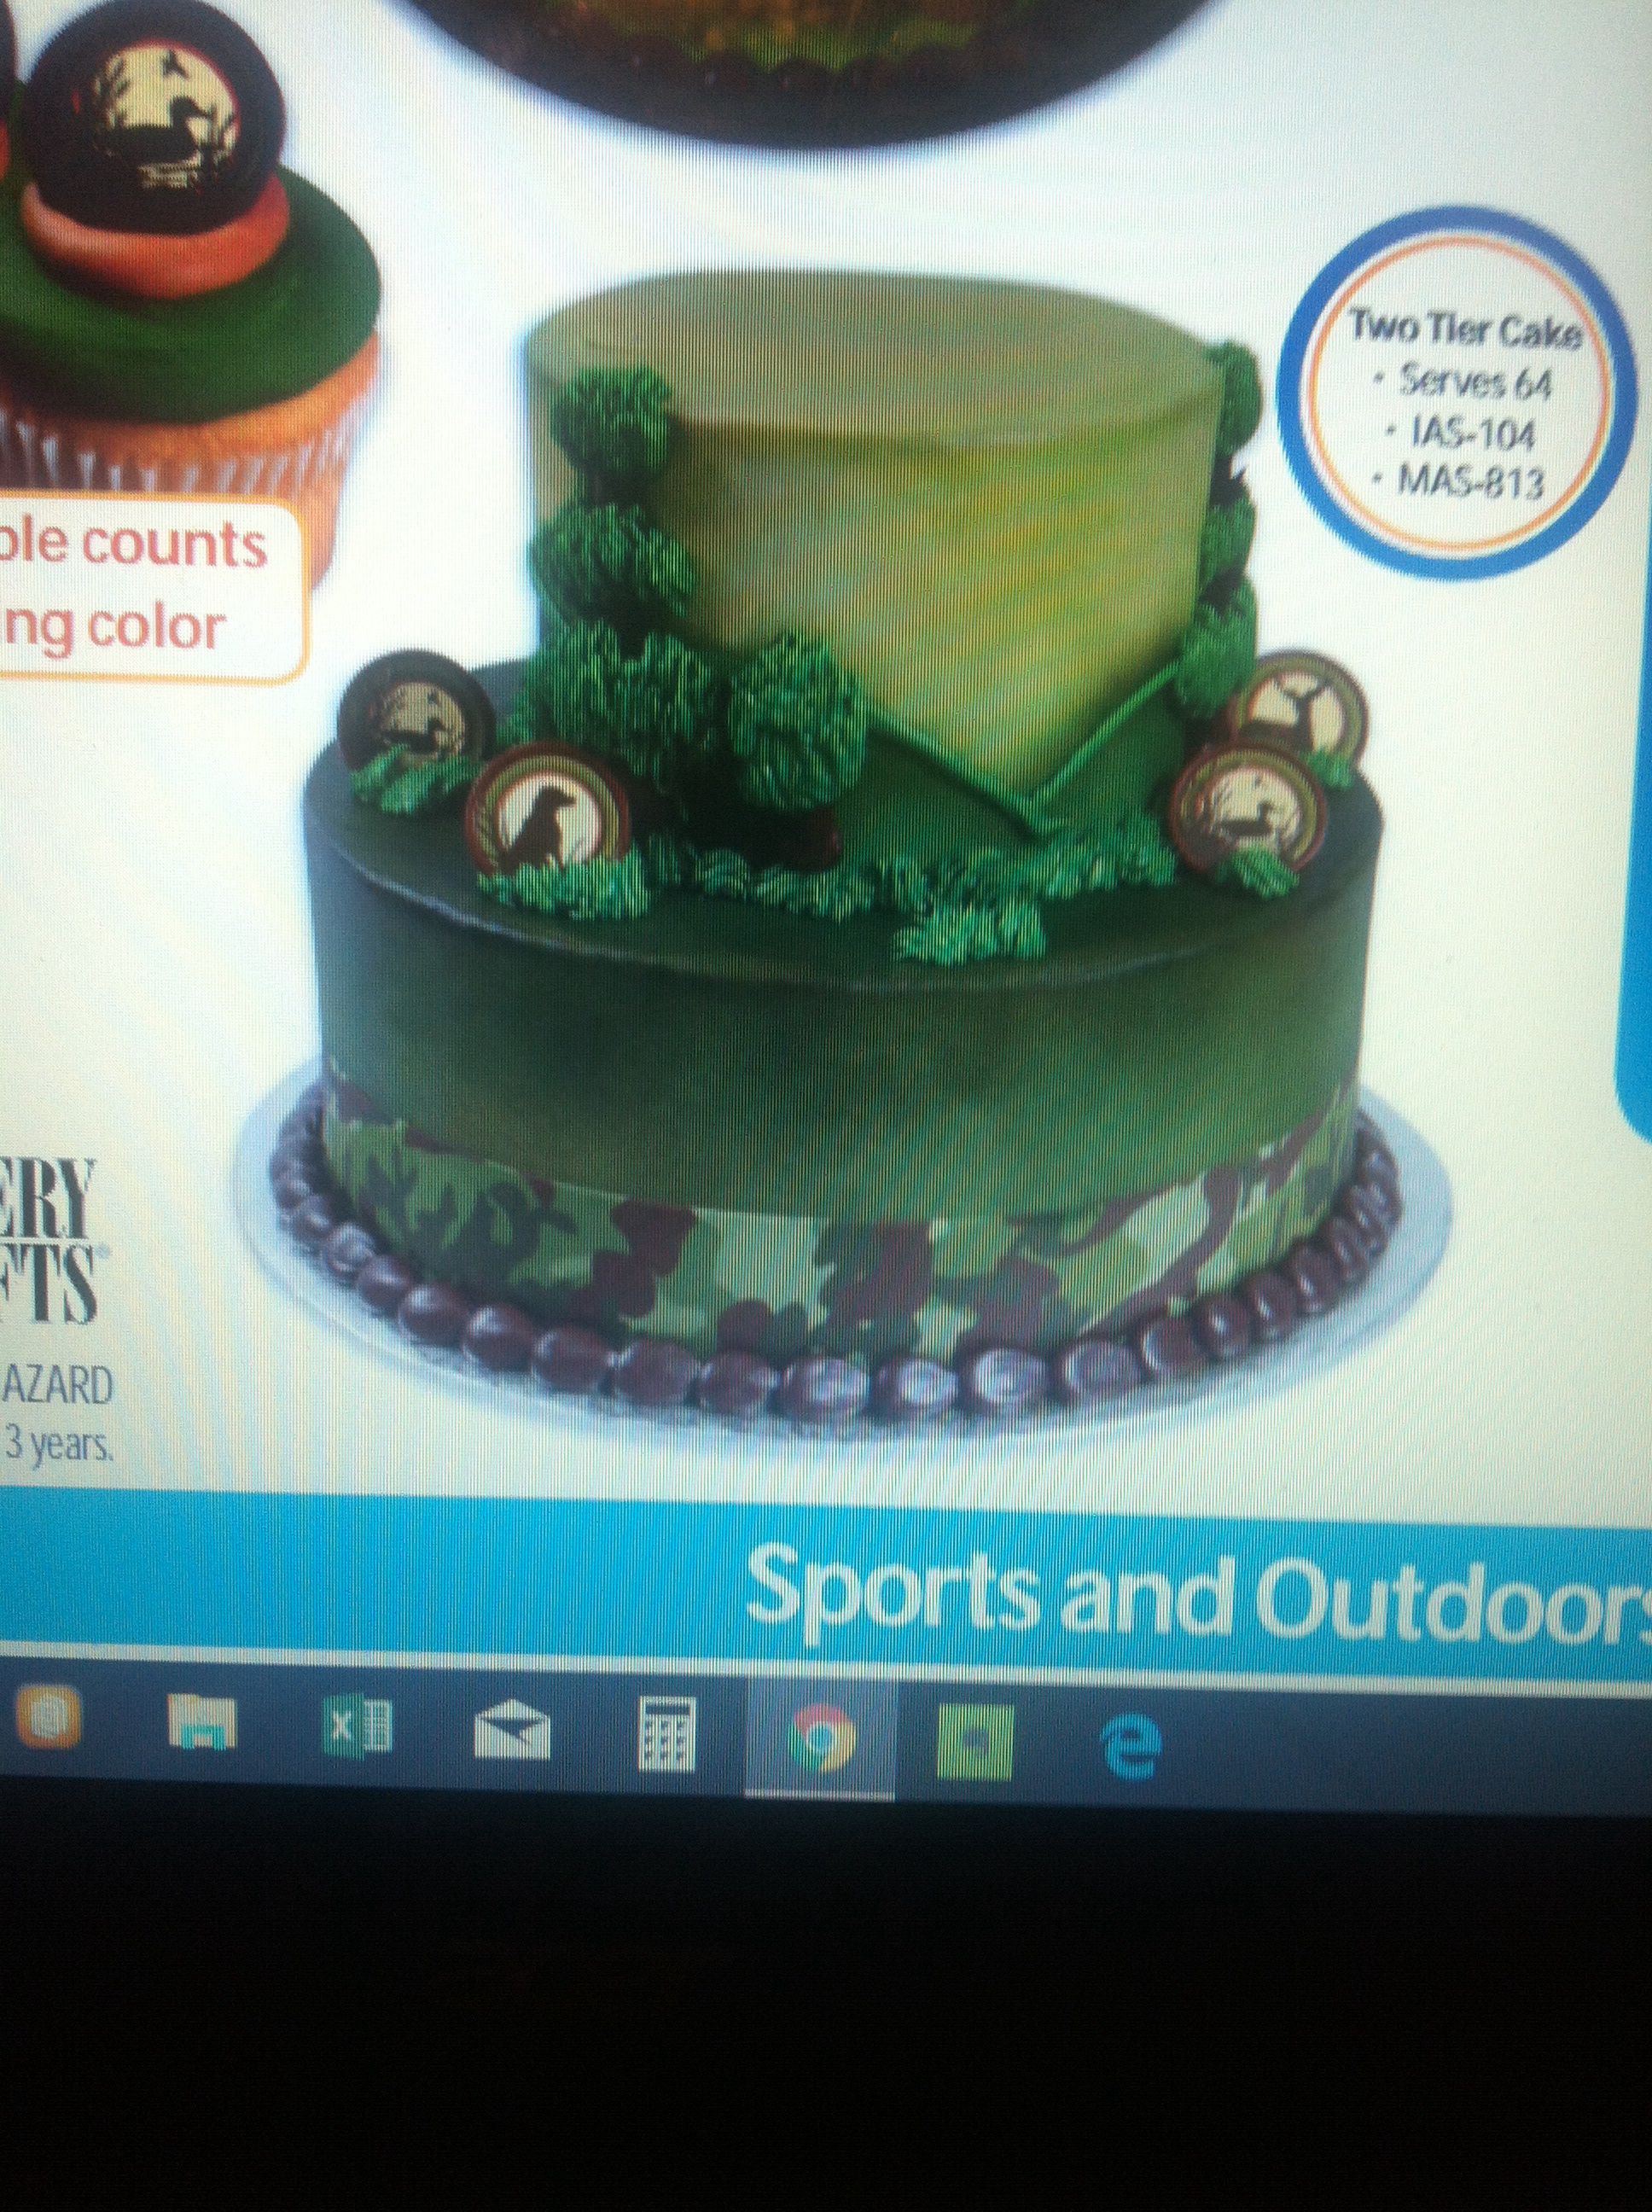 Admirable Live To Hunt Cake 58 For 2 Tiers Walmart Sports Outdoors Personalised Birthday Cards Petedlily Jamesorg